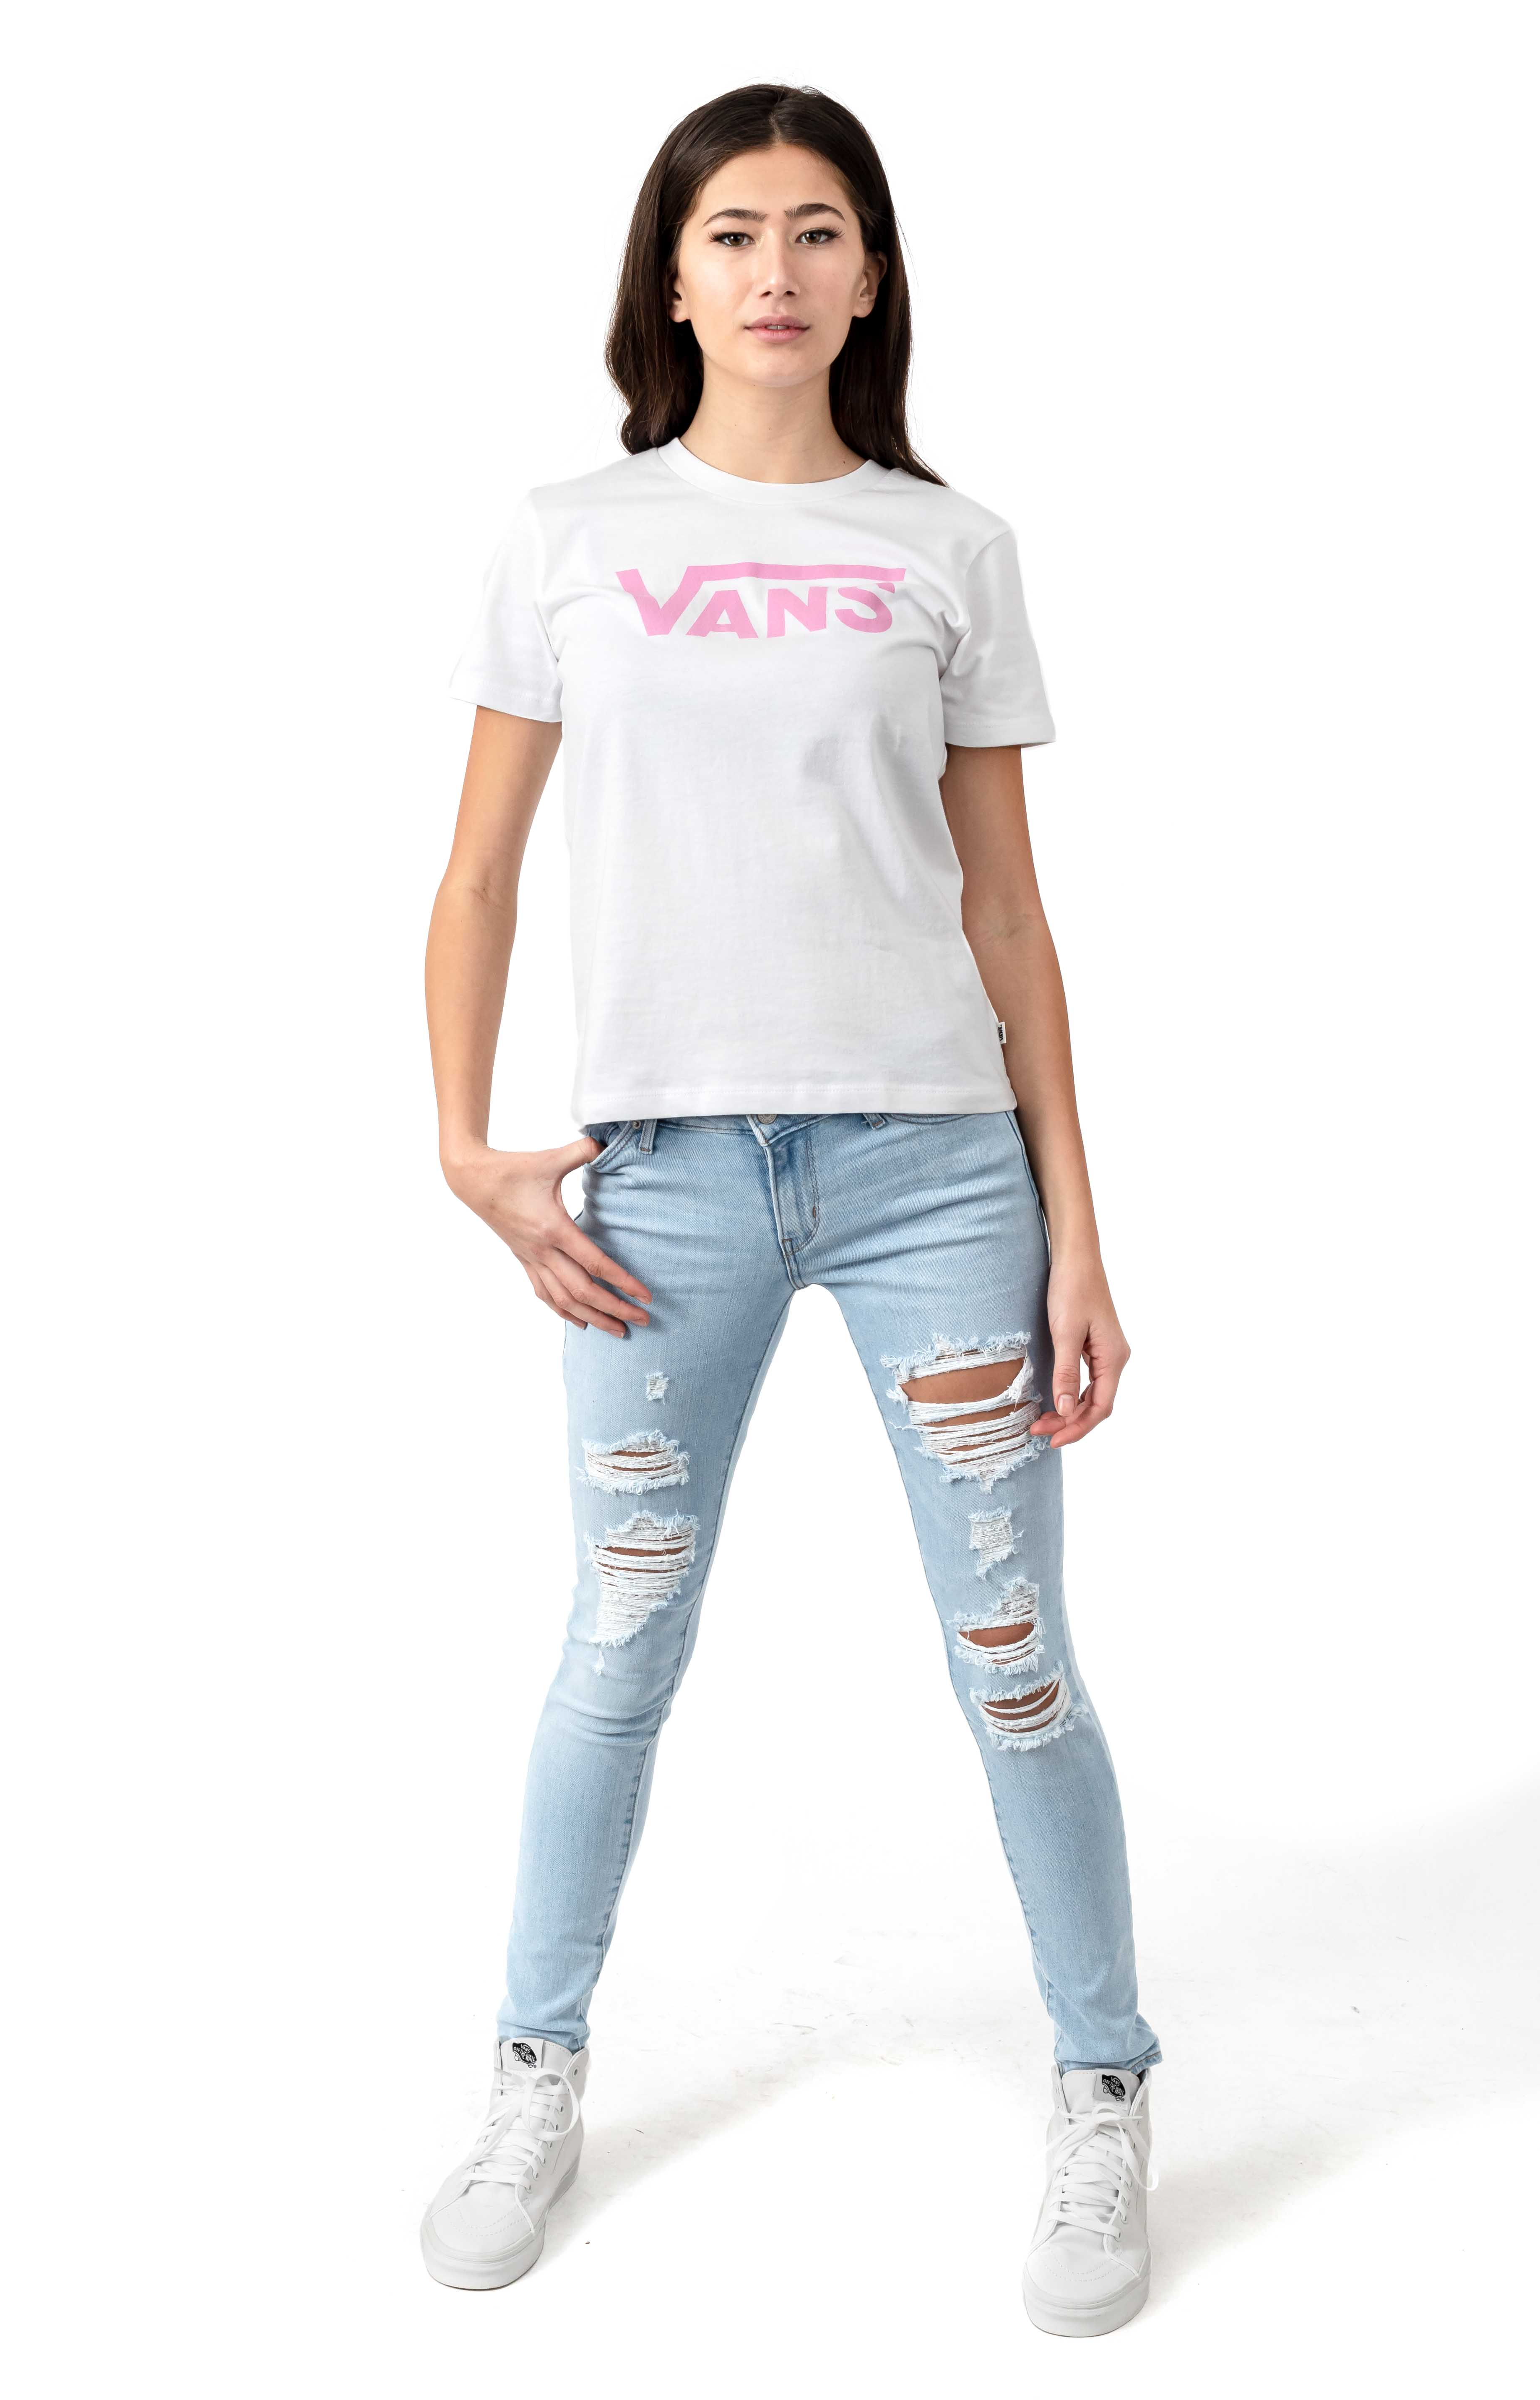 Flying V T-Shirt - White/Fuchsia  4